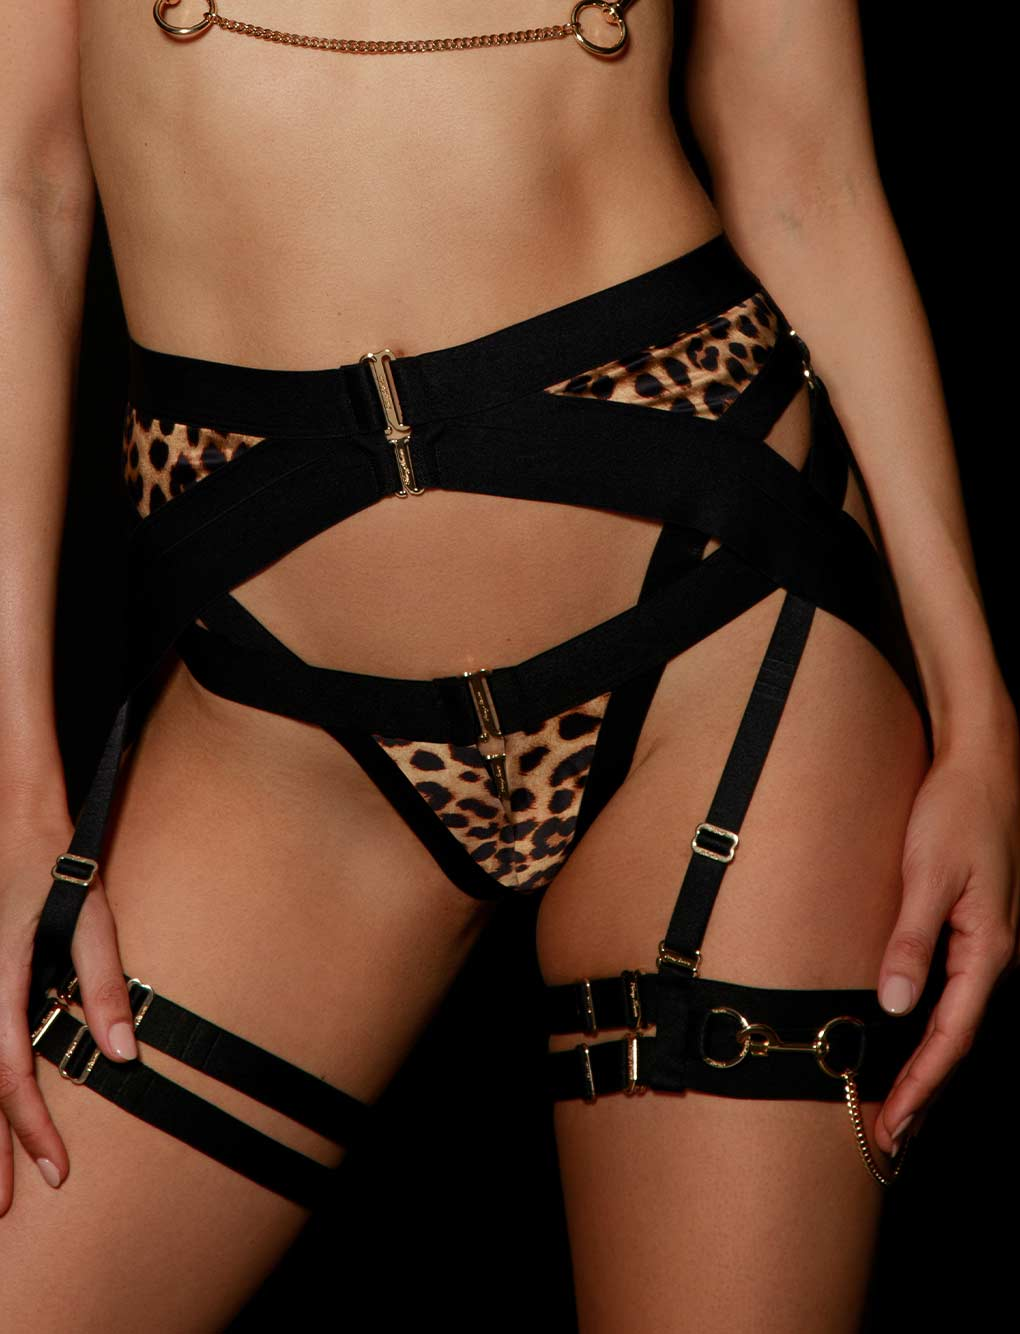 Kukuro Leopard Suspender | Shop Suspenders | Honey Birdette